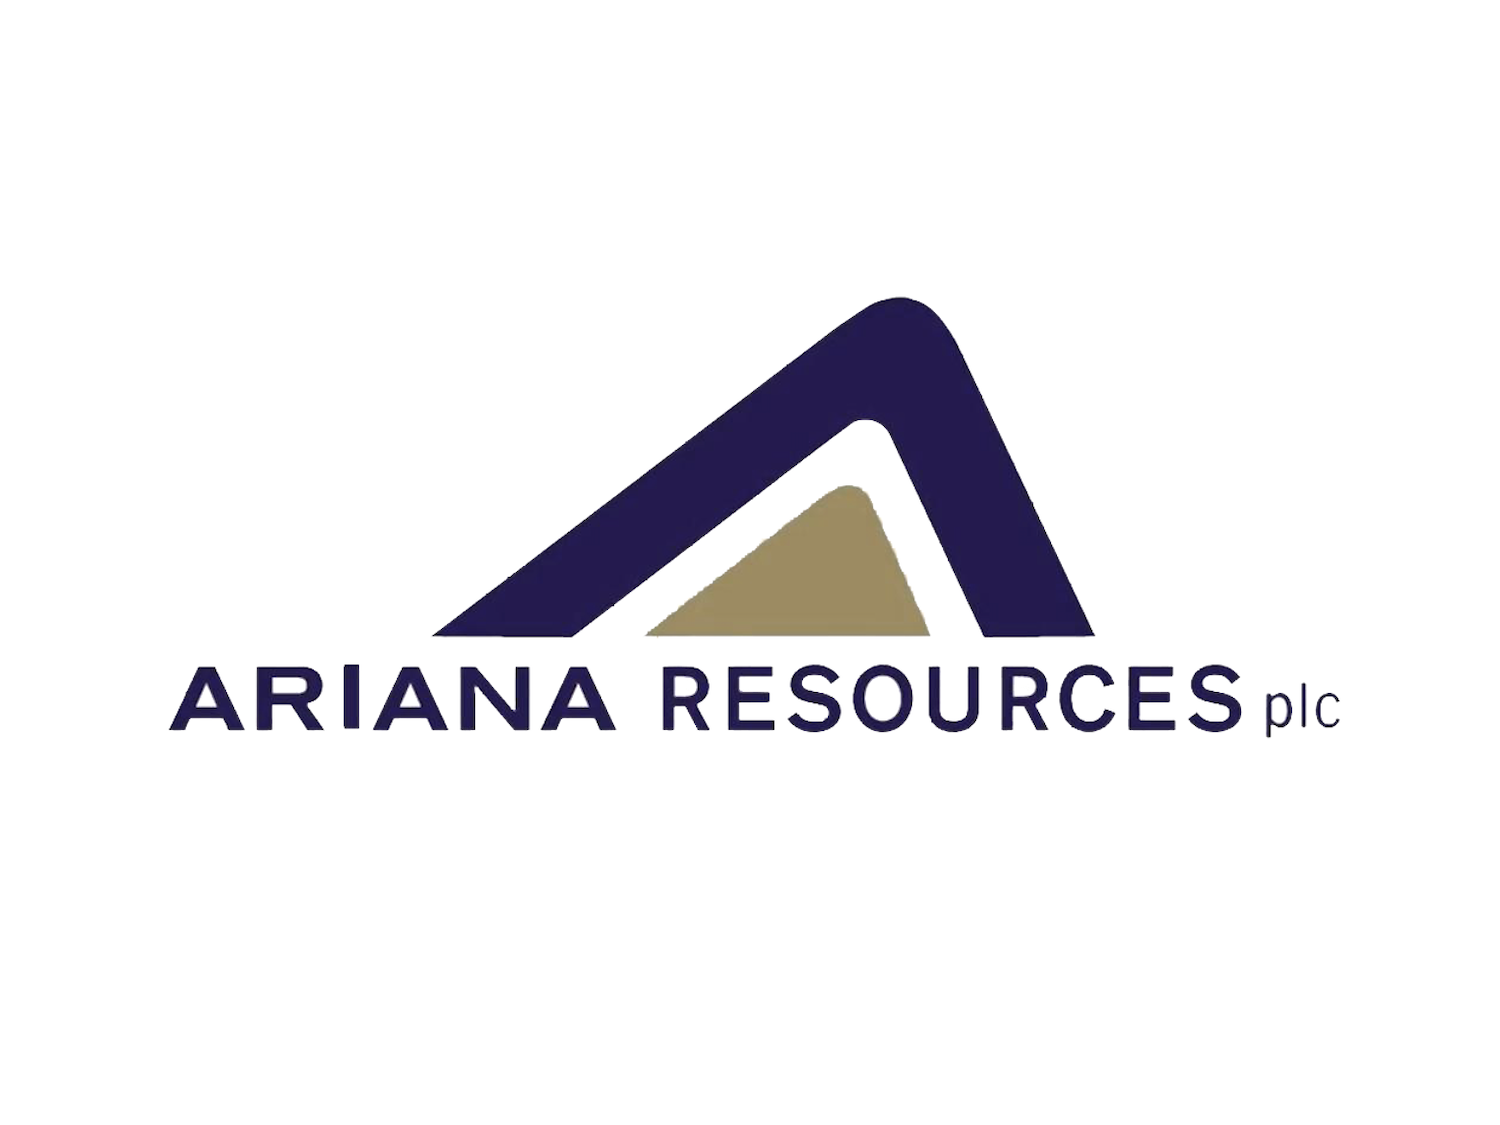 Ariana uninterrupted by Covid-19 as it posts record quarter at Kiziltepe (AAU)